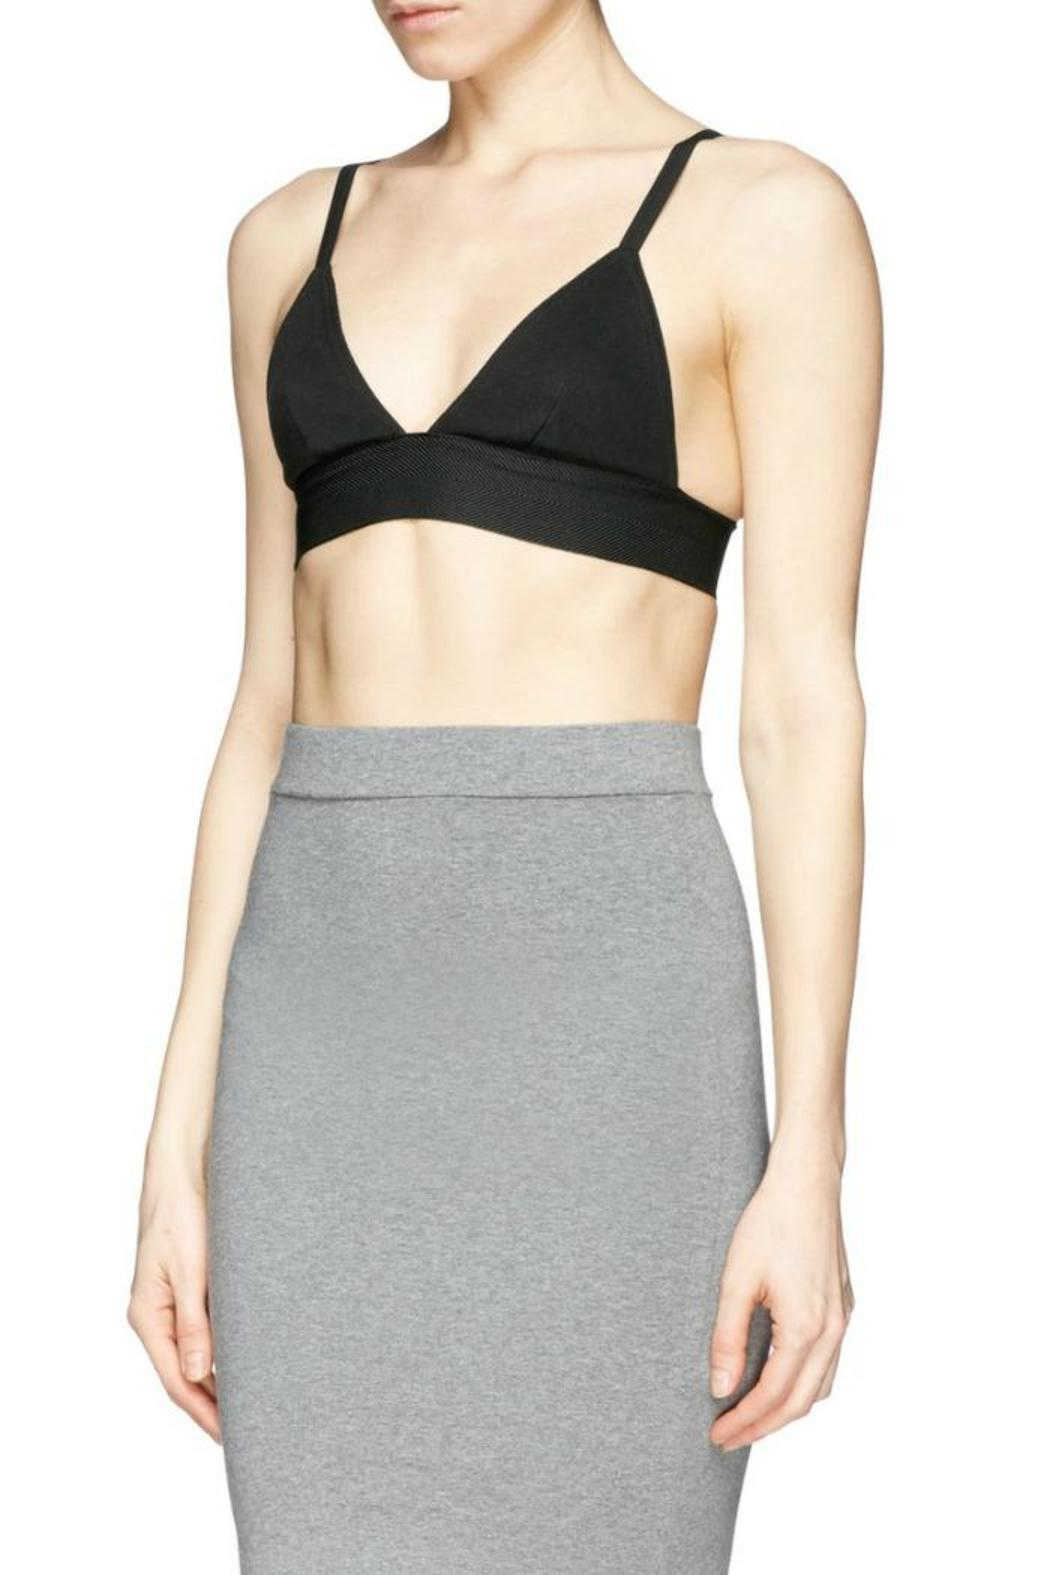 T by Alexander Wang Stretch Pique Triangle Bra - Side Cropped Image